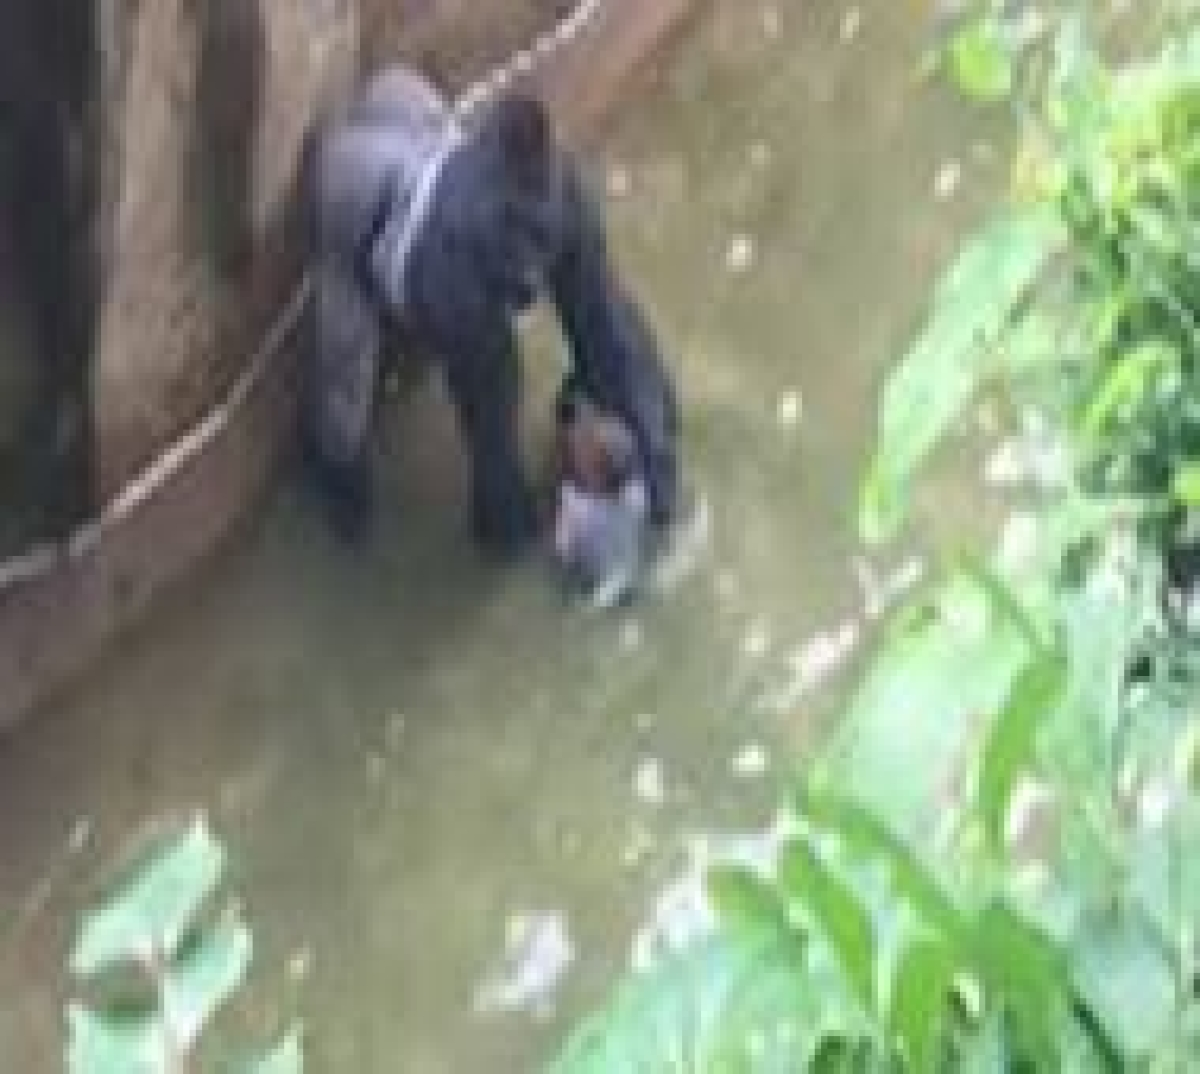 Ohio official: No decision yet on charges in gorilla case